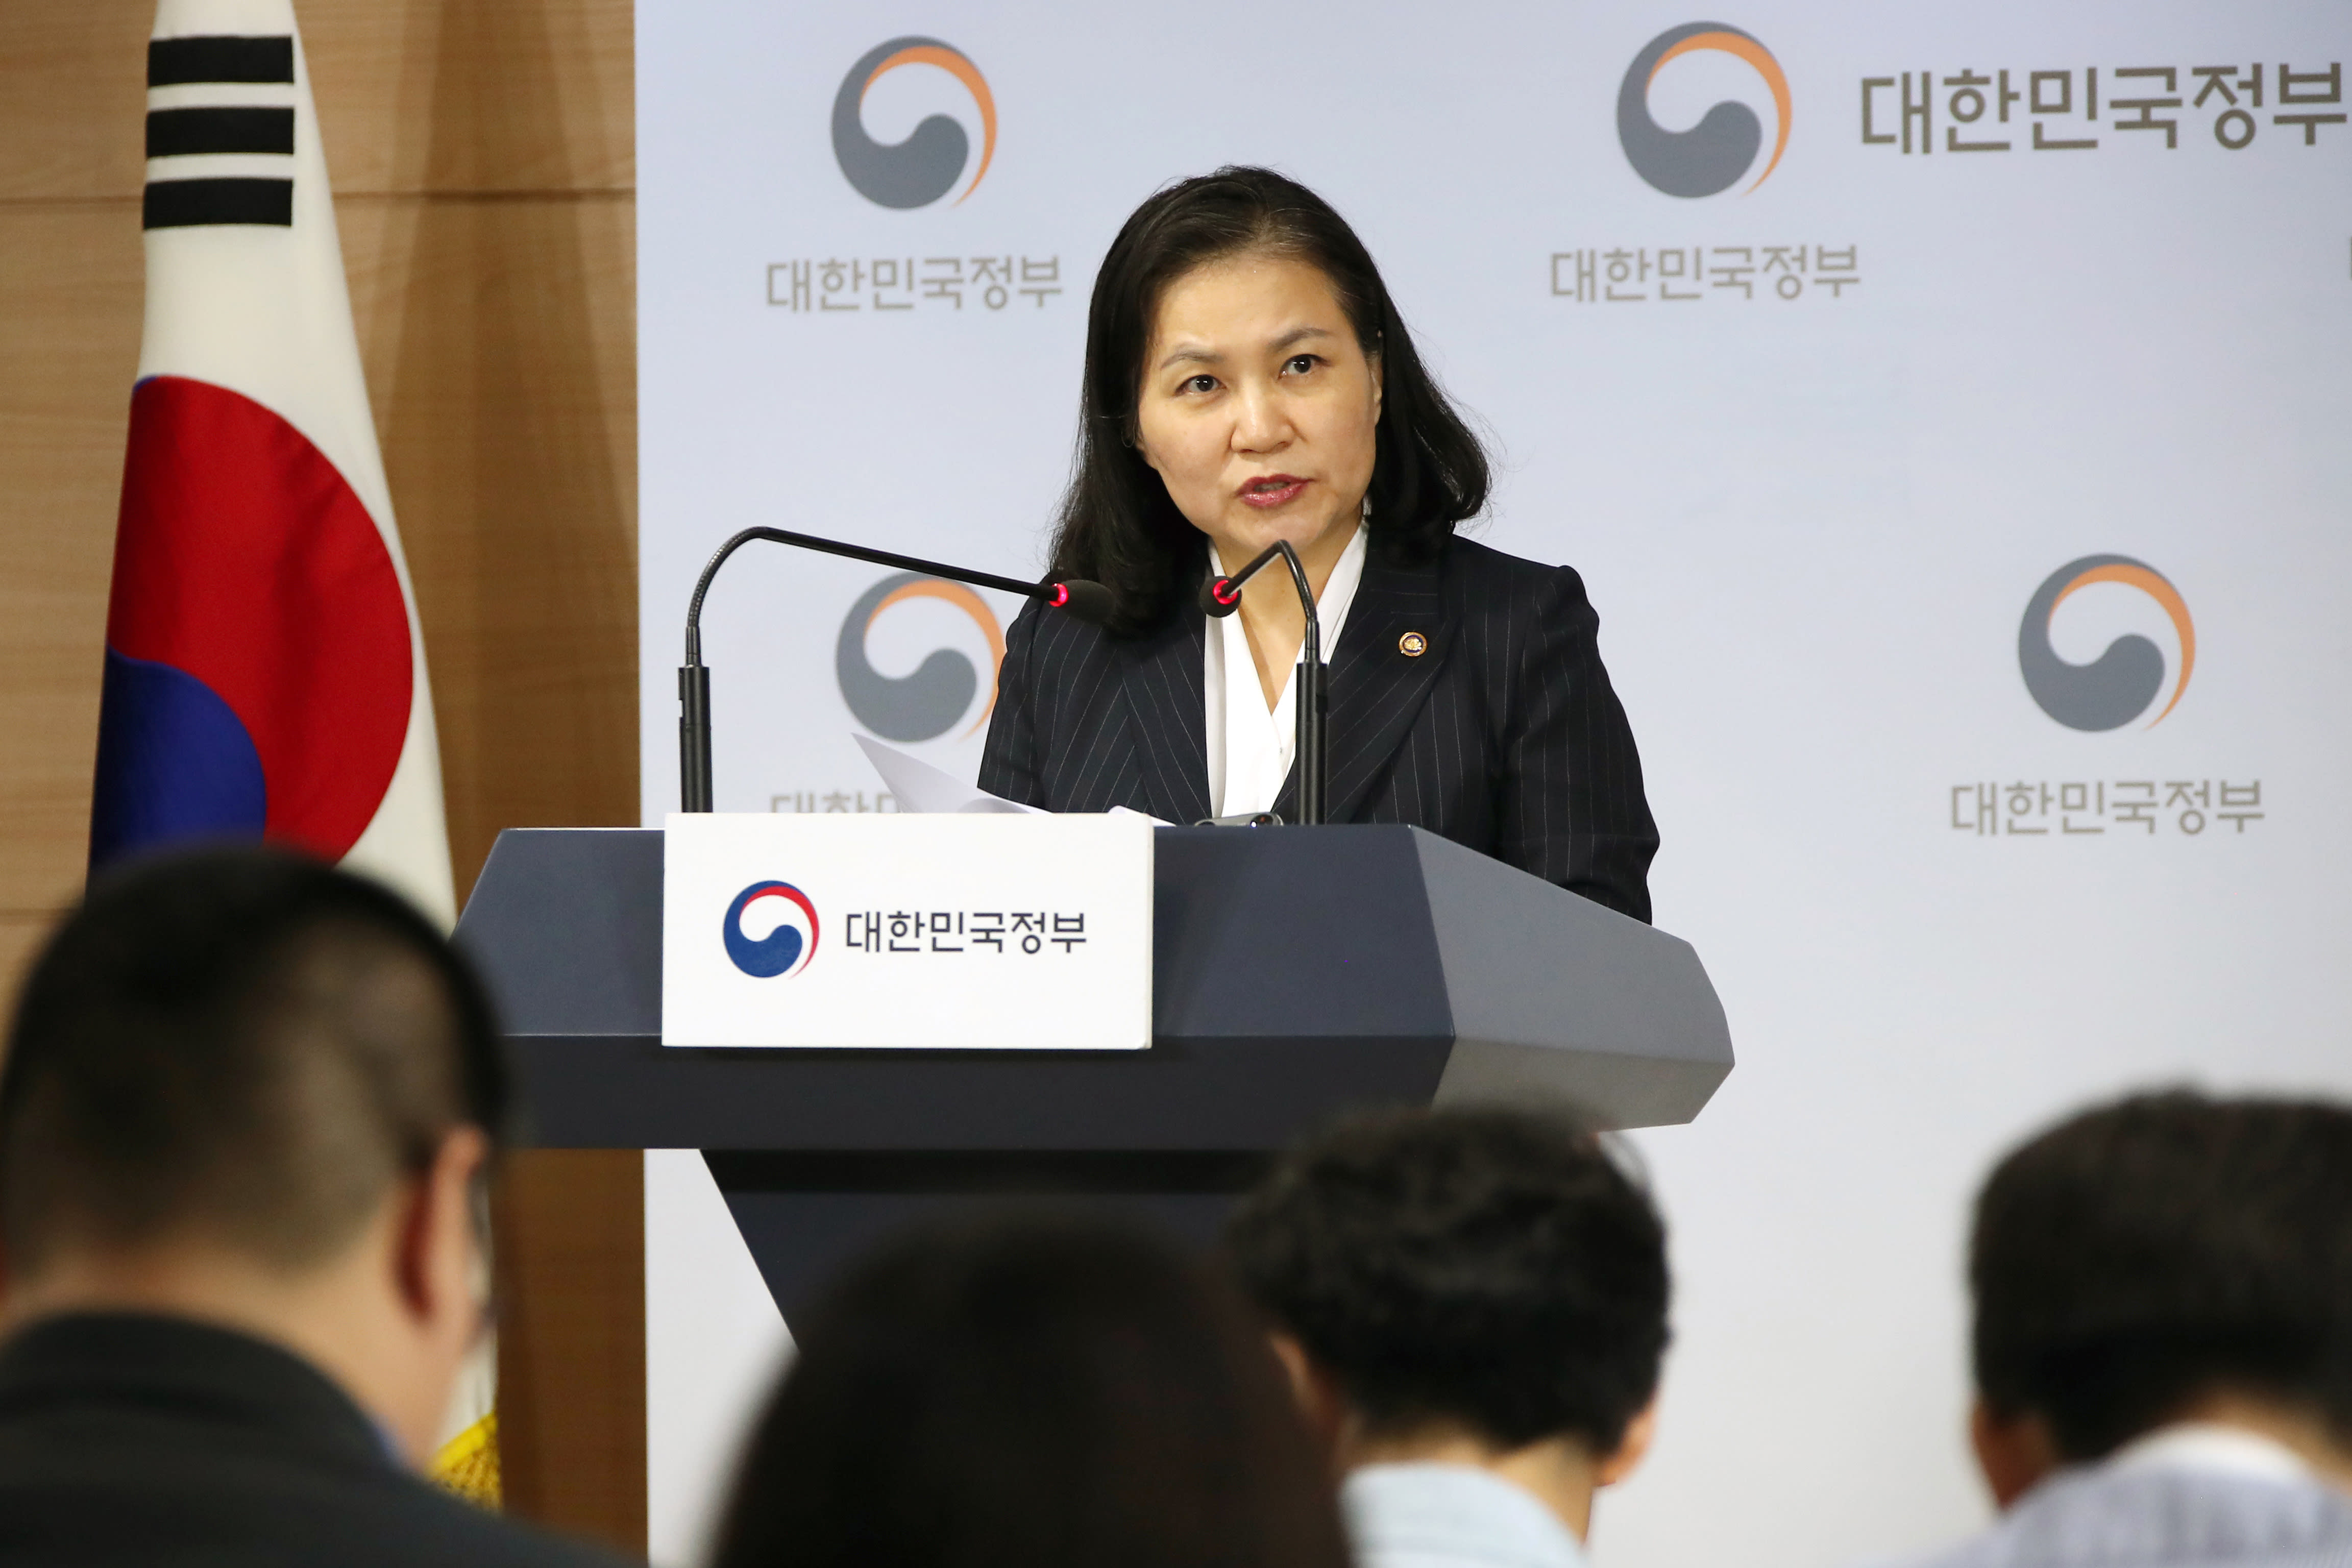 South Korea's senior trade official Yoo Myung-hee speaks during a briefing at a government complex in downtown Seoul, South Korea, Wednesday, Sept. 11, 2019. South Korea is filing a complaint with the World Trade Organization over Japan's tightened export controls on key materials South Korean companies use to make computer chips and displays, accusing Tokyo of weaponizing trade to retaliate over political rows. (Kim Seung-doo/Yonhap via AP)